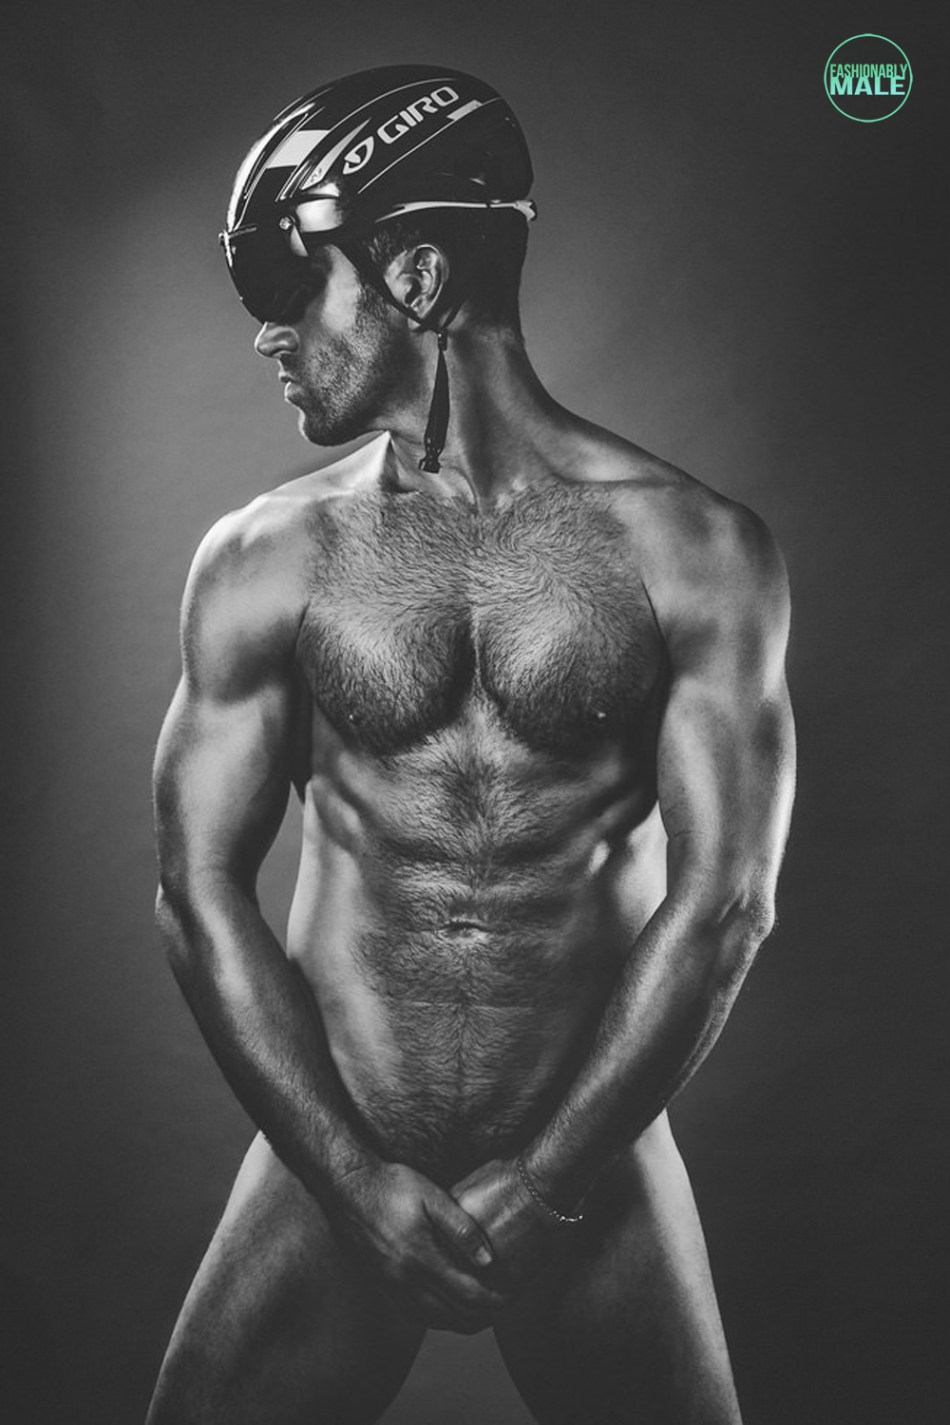 Josh Owens by Sean Micah for Fashionably Male1